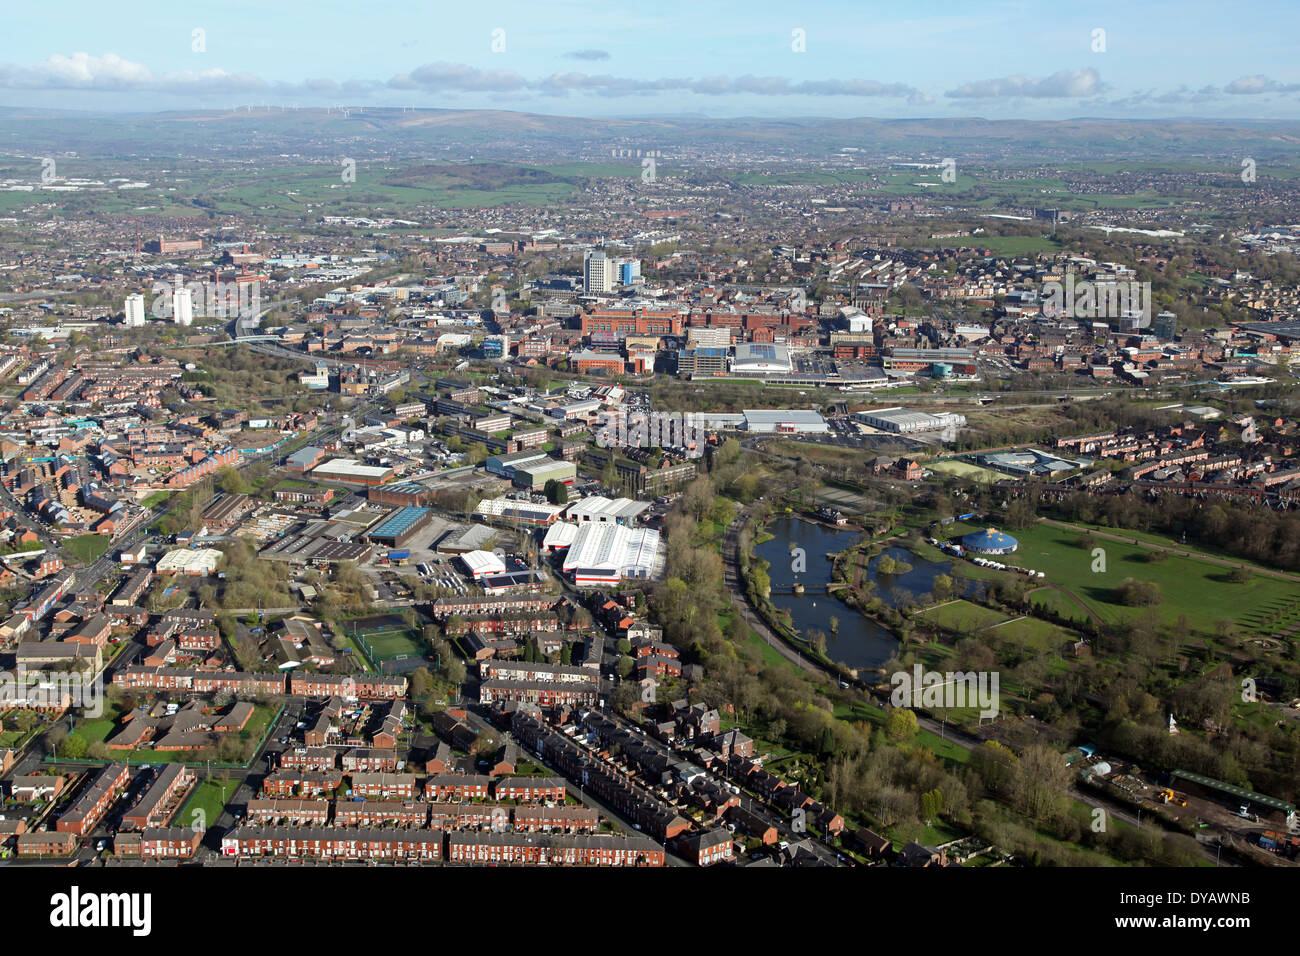 wide aerial view of Oldham and its suburbs in Manchester, Lancashire - Stock Image